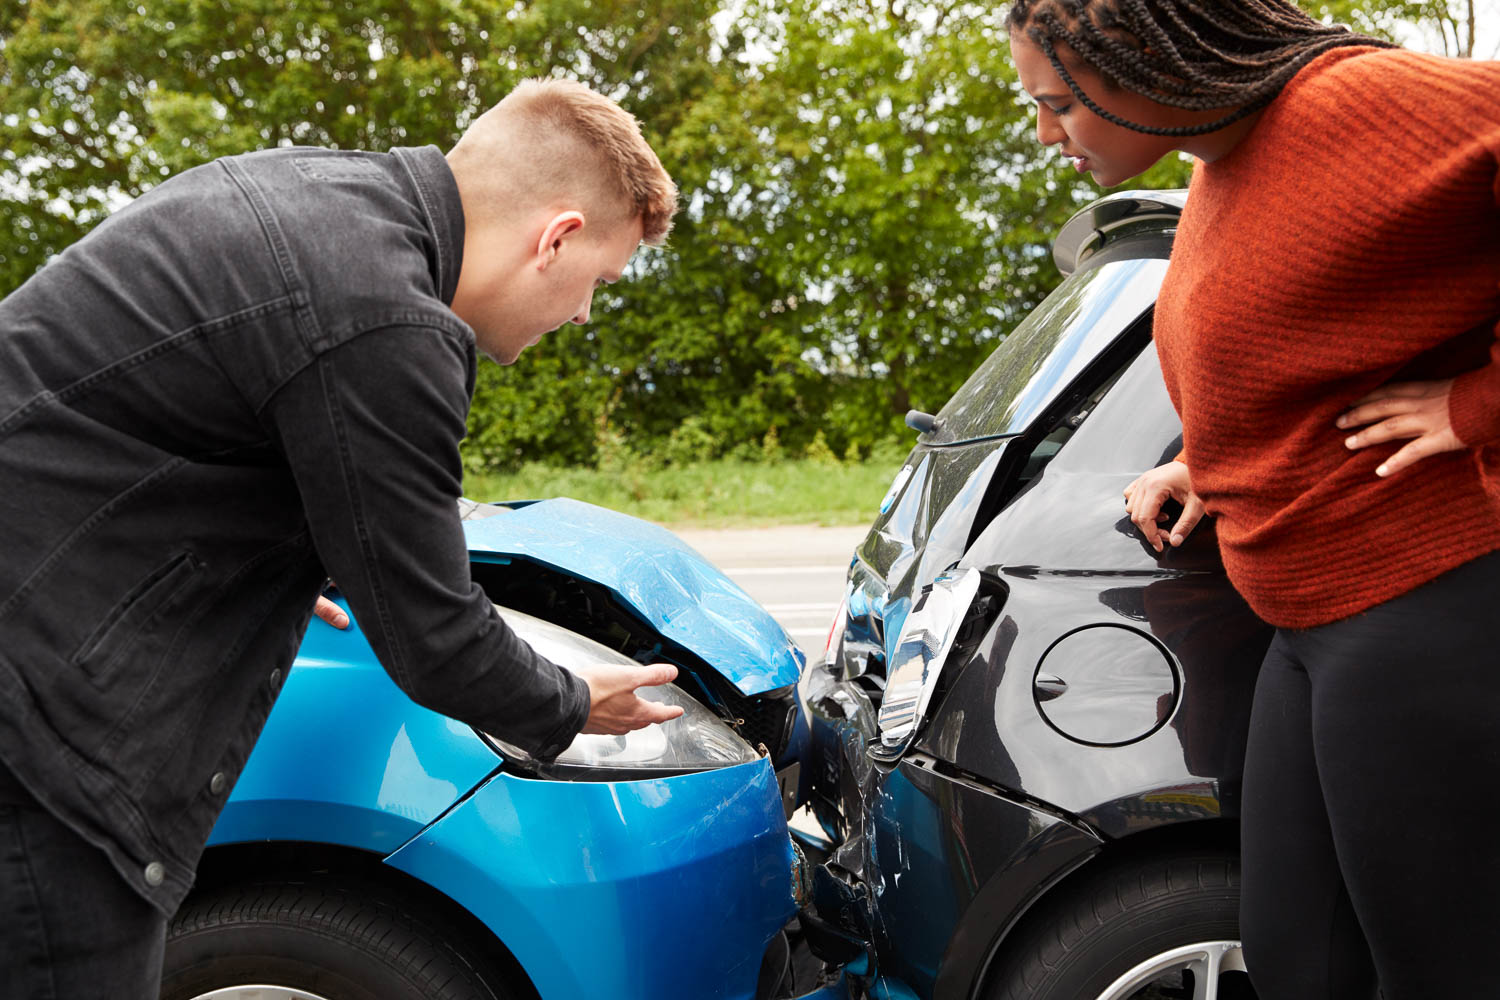 Traffic Crimes Defense Attorney Fort Lauderdale can defend you if charged with a Traffic crime related to a car accident